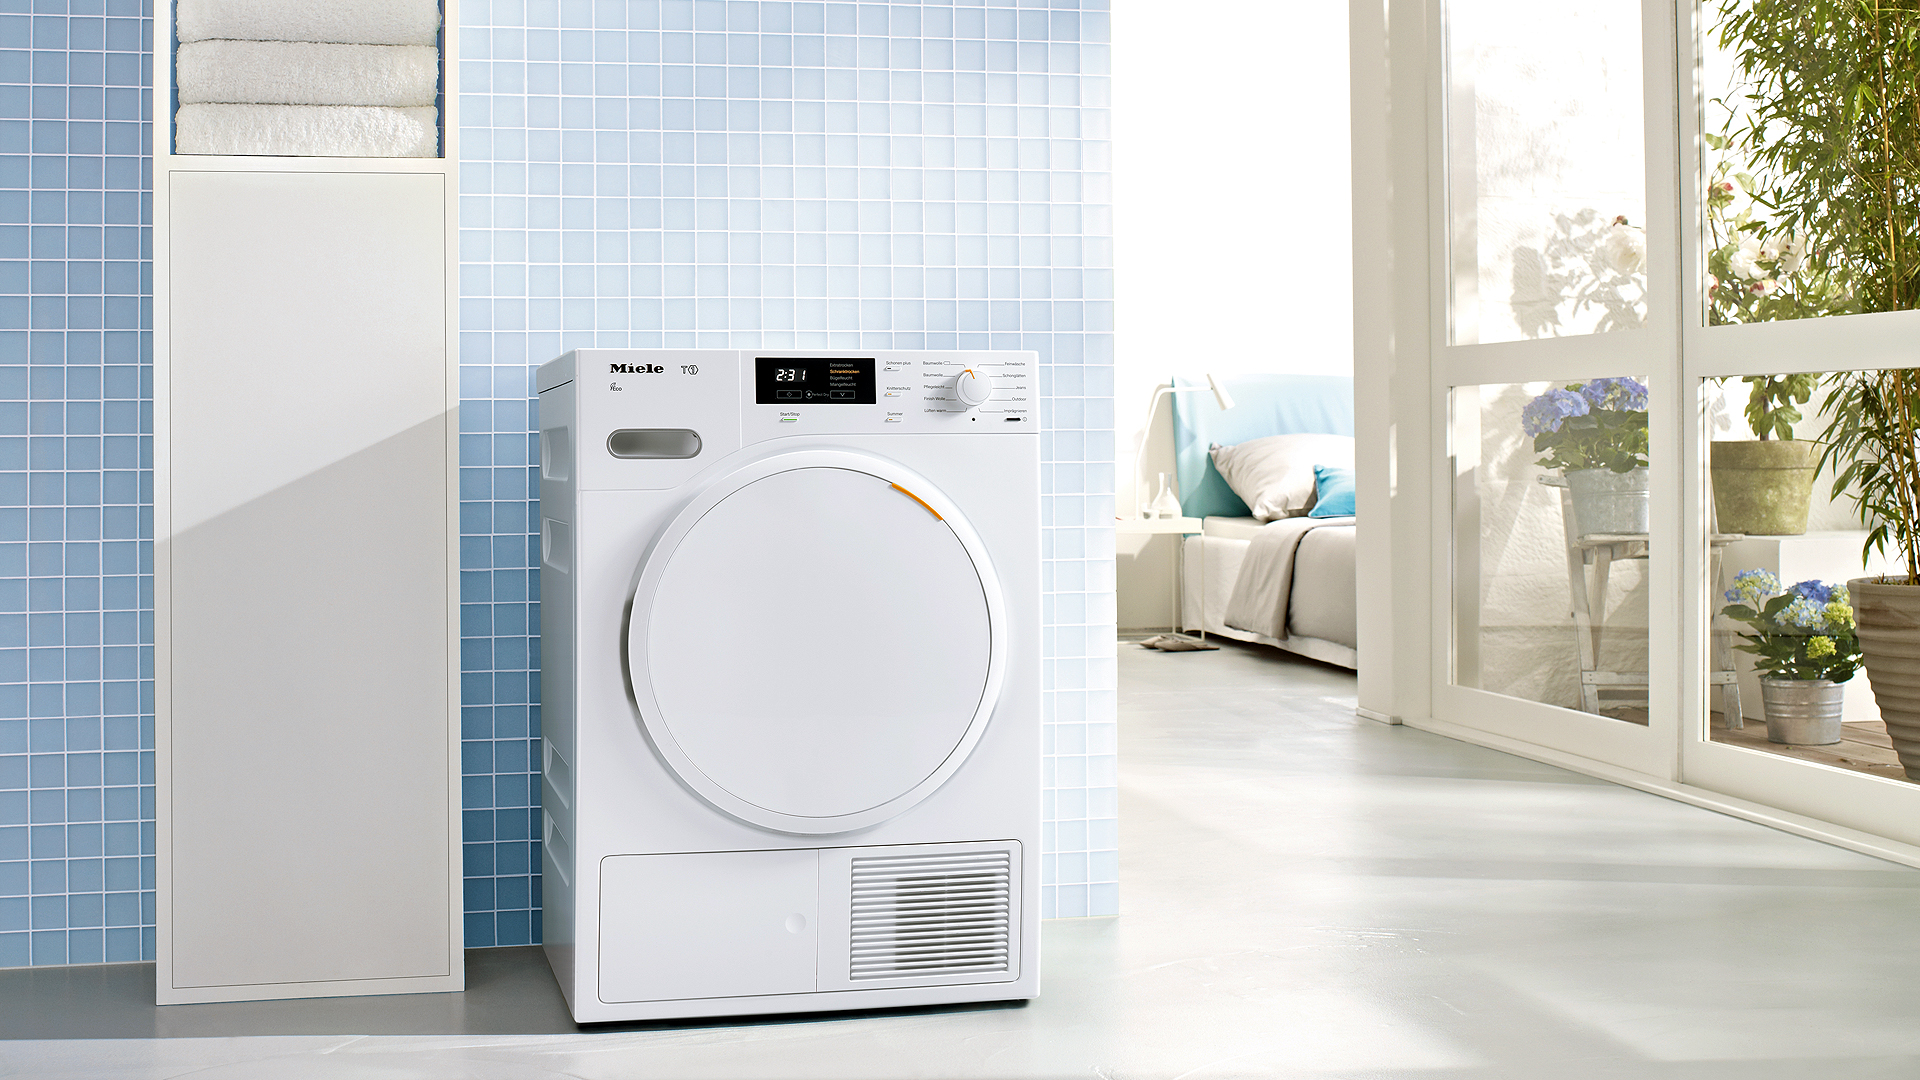 Water towel dryers: which are better, reviews, types, specifications and features 41